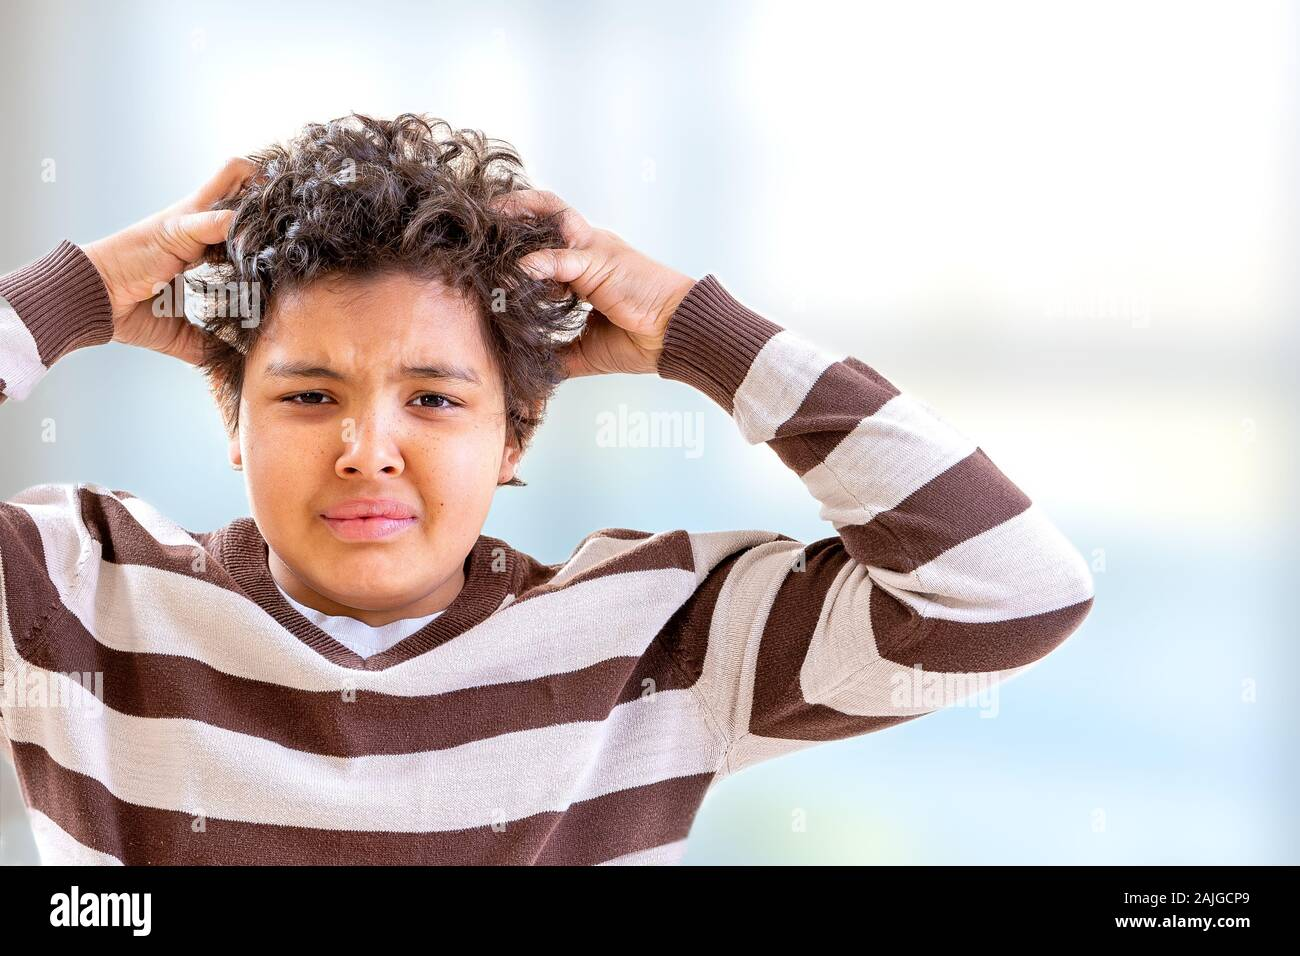 Stress boy scratching his hair with confused expression Stock Photo